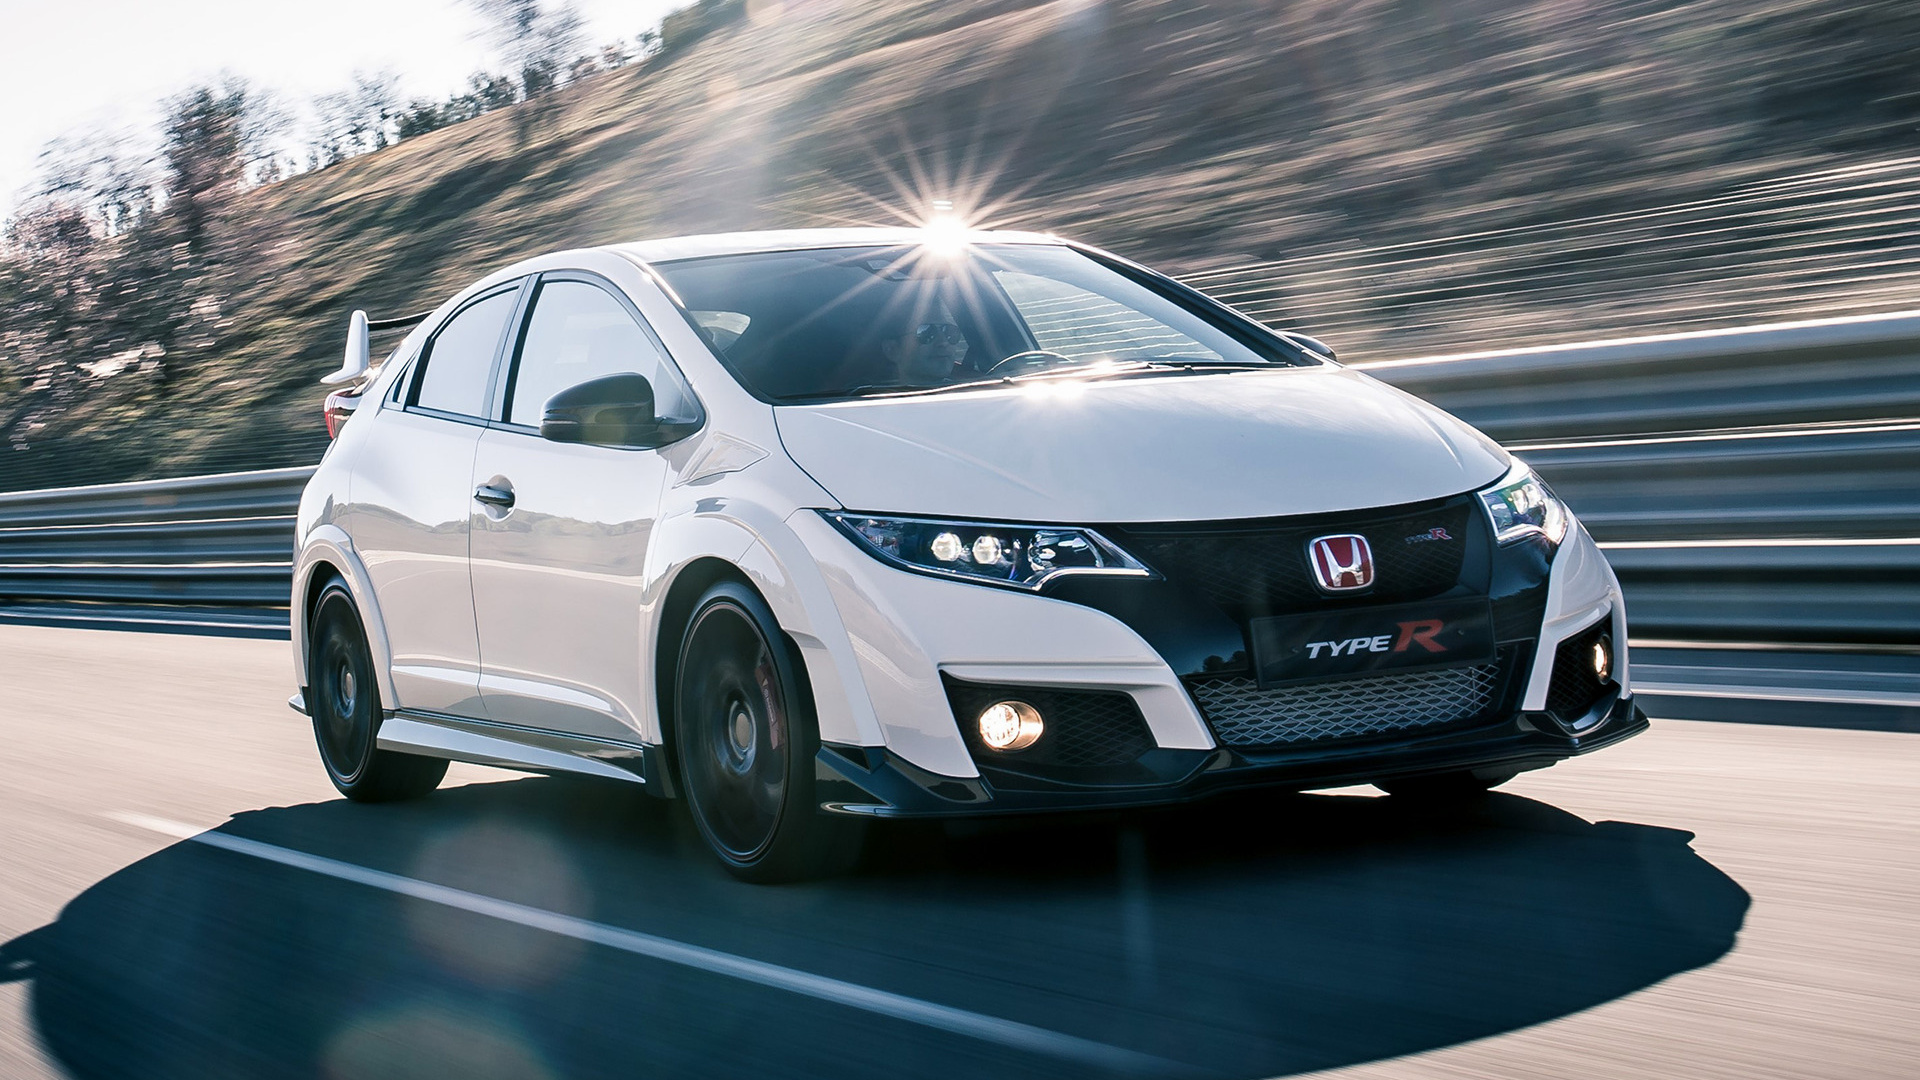 Honda Civic Type R (2015) Wallpapers and HD Images - Car Pixel